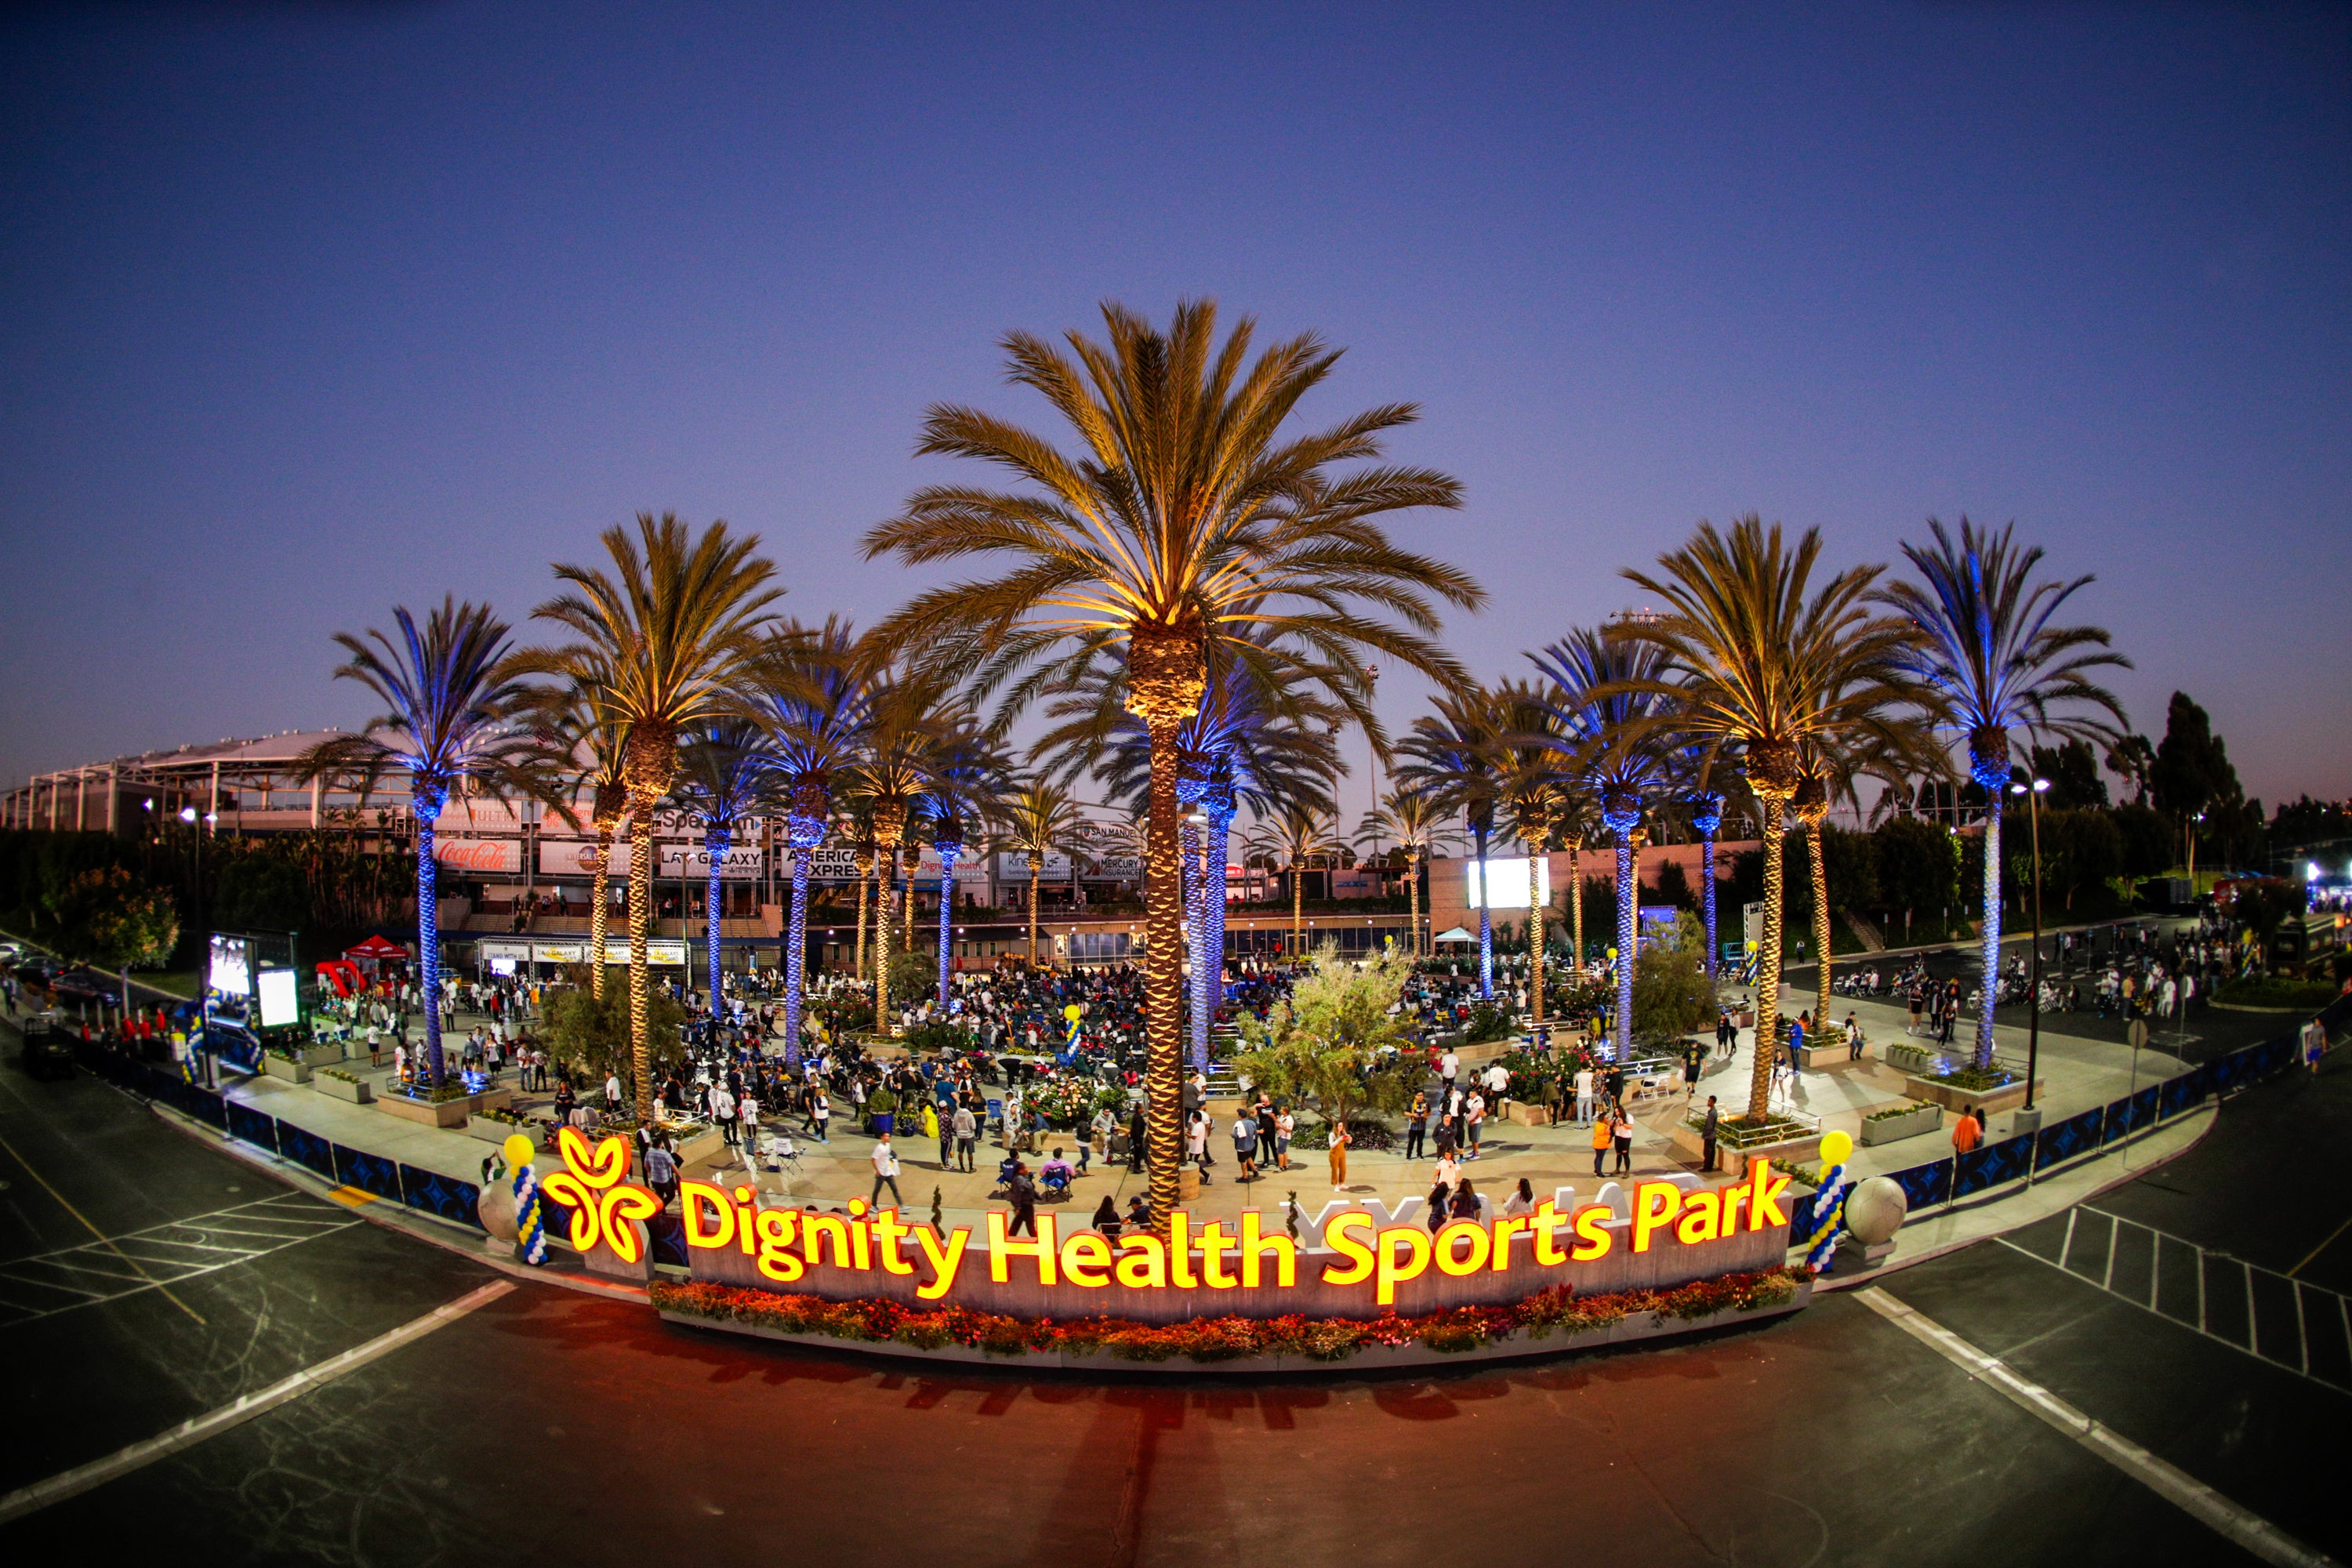 Special Events | Dignity Health Sports Park